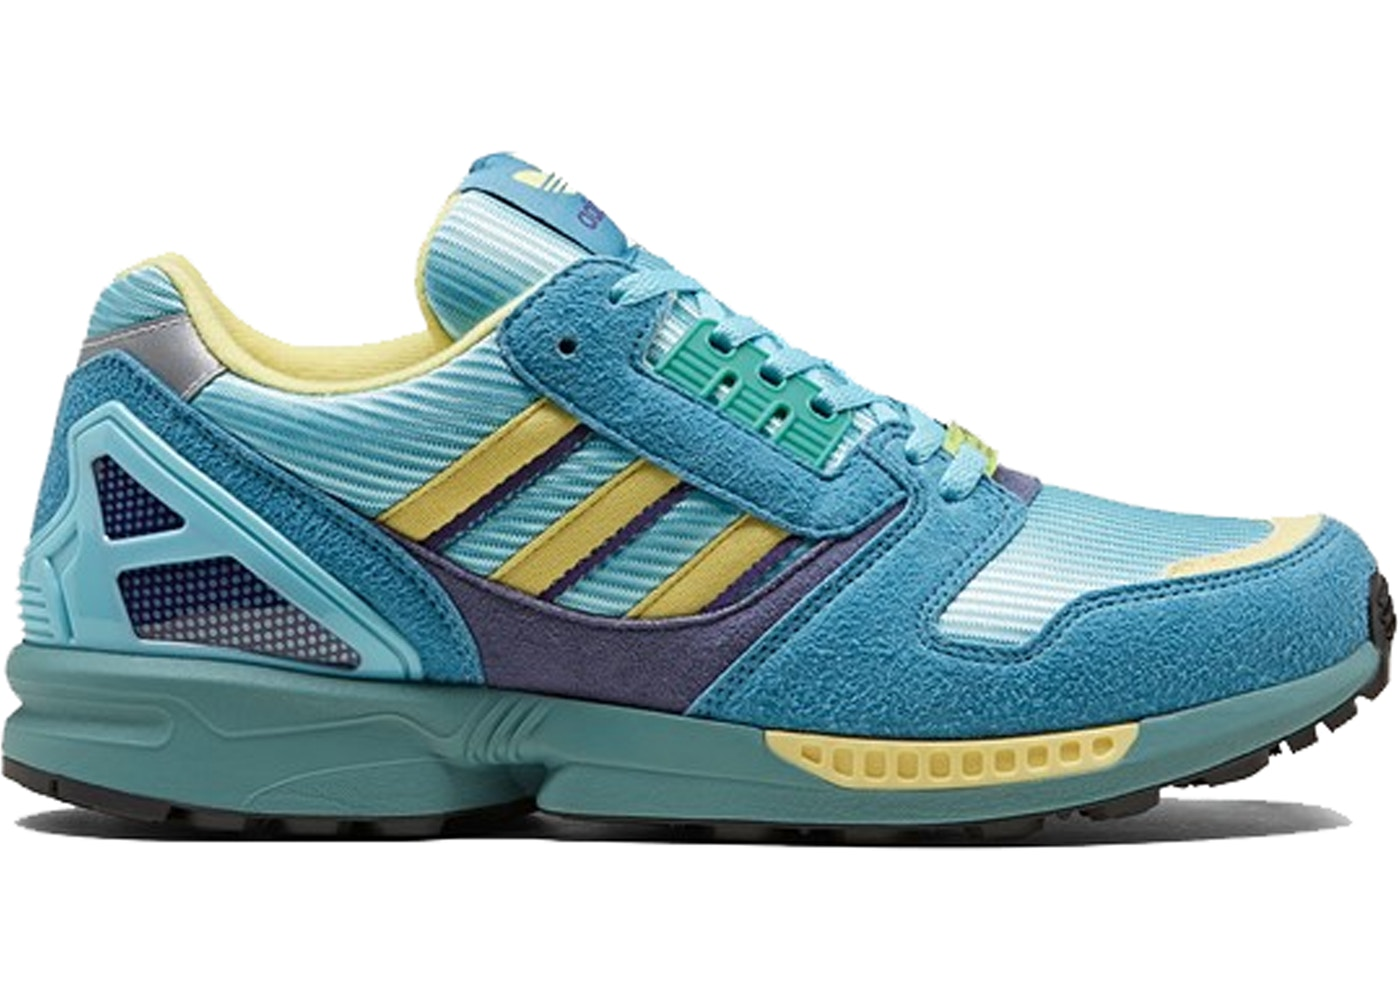 メンズ靴, スニーカー  ADIDAS ZX 8000 LIGHT AQUA TACTICLE STEEL SAND